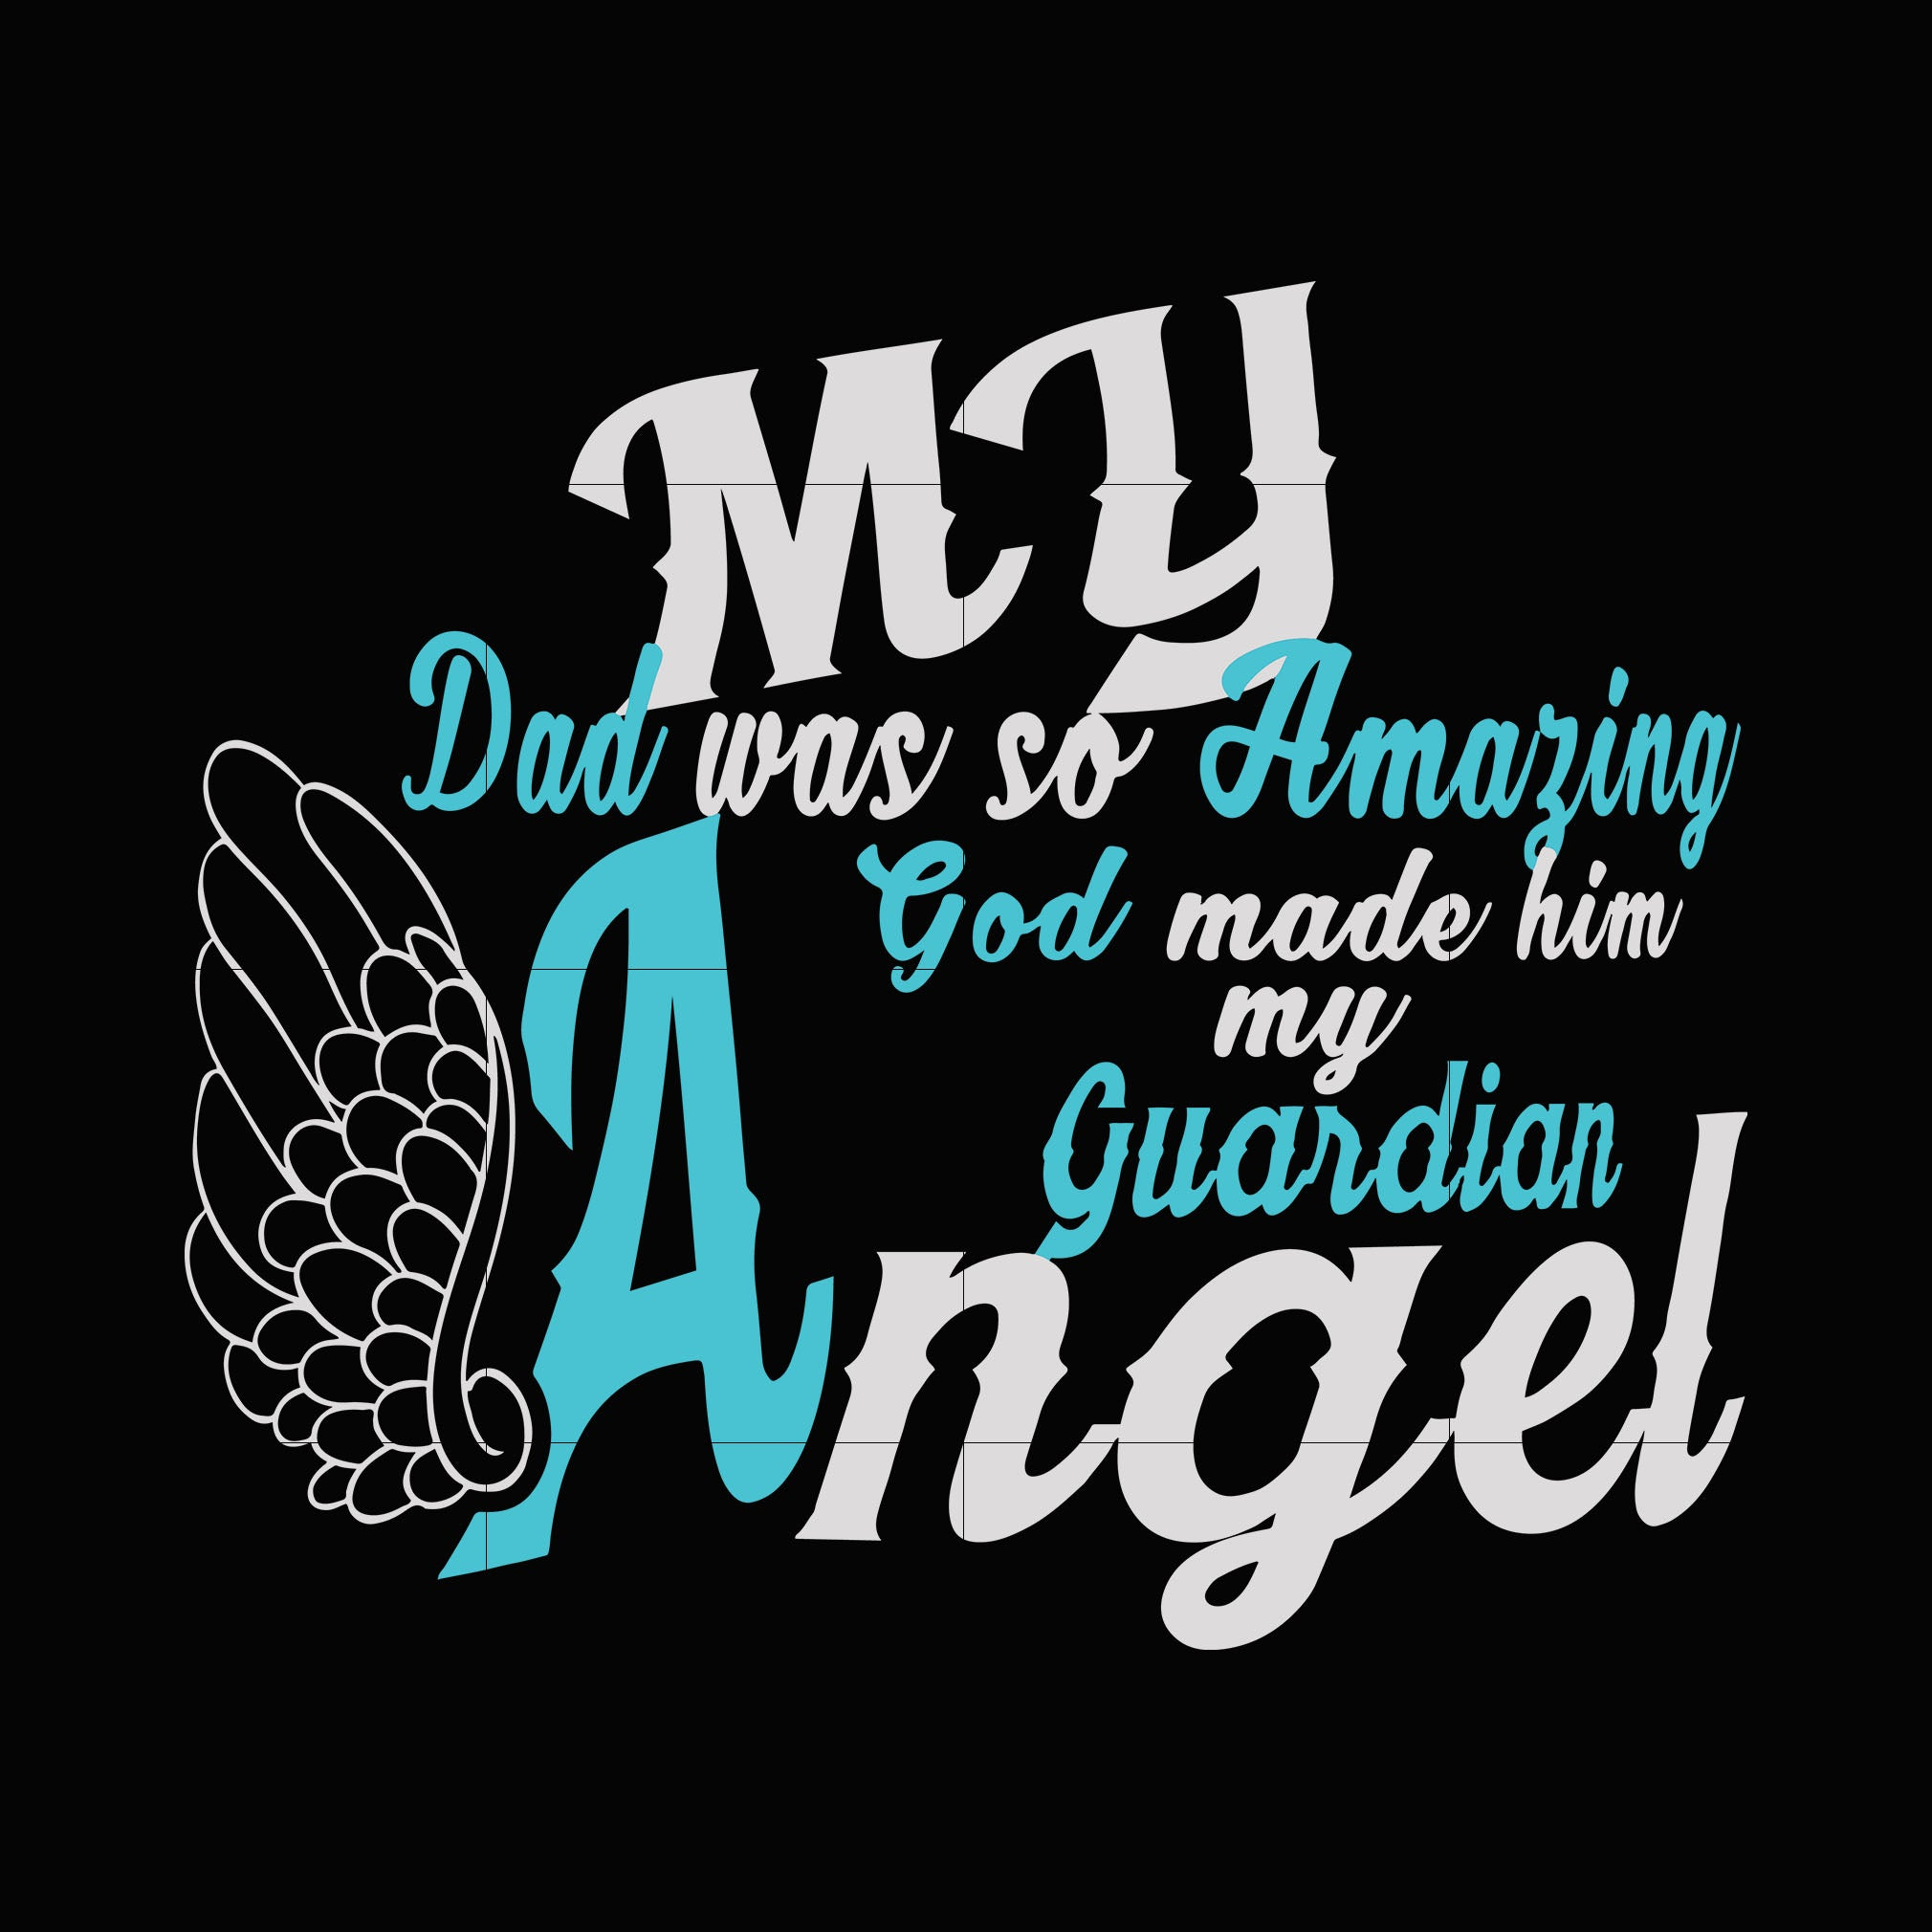 My dad was so amazing god made him my guardian angel  svg ,dxf,eps,png digital file